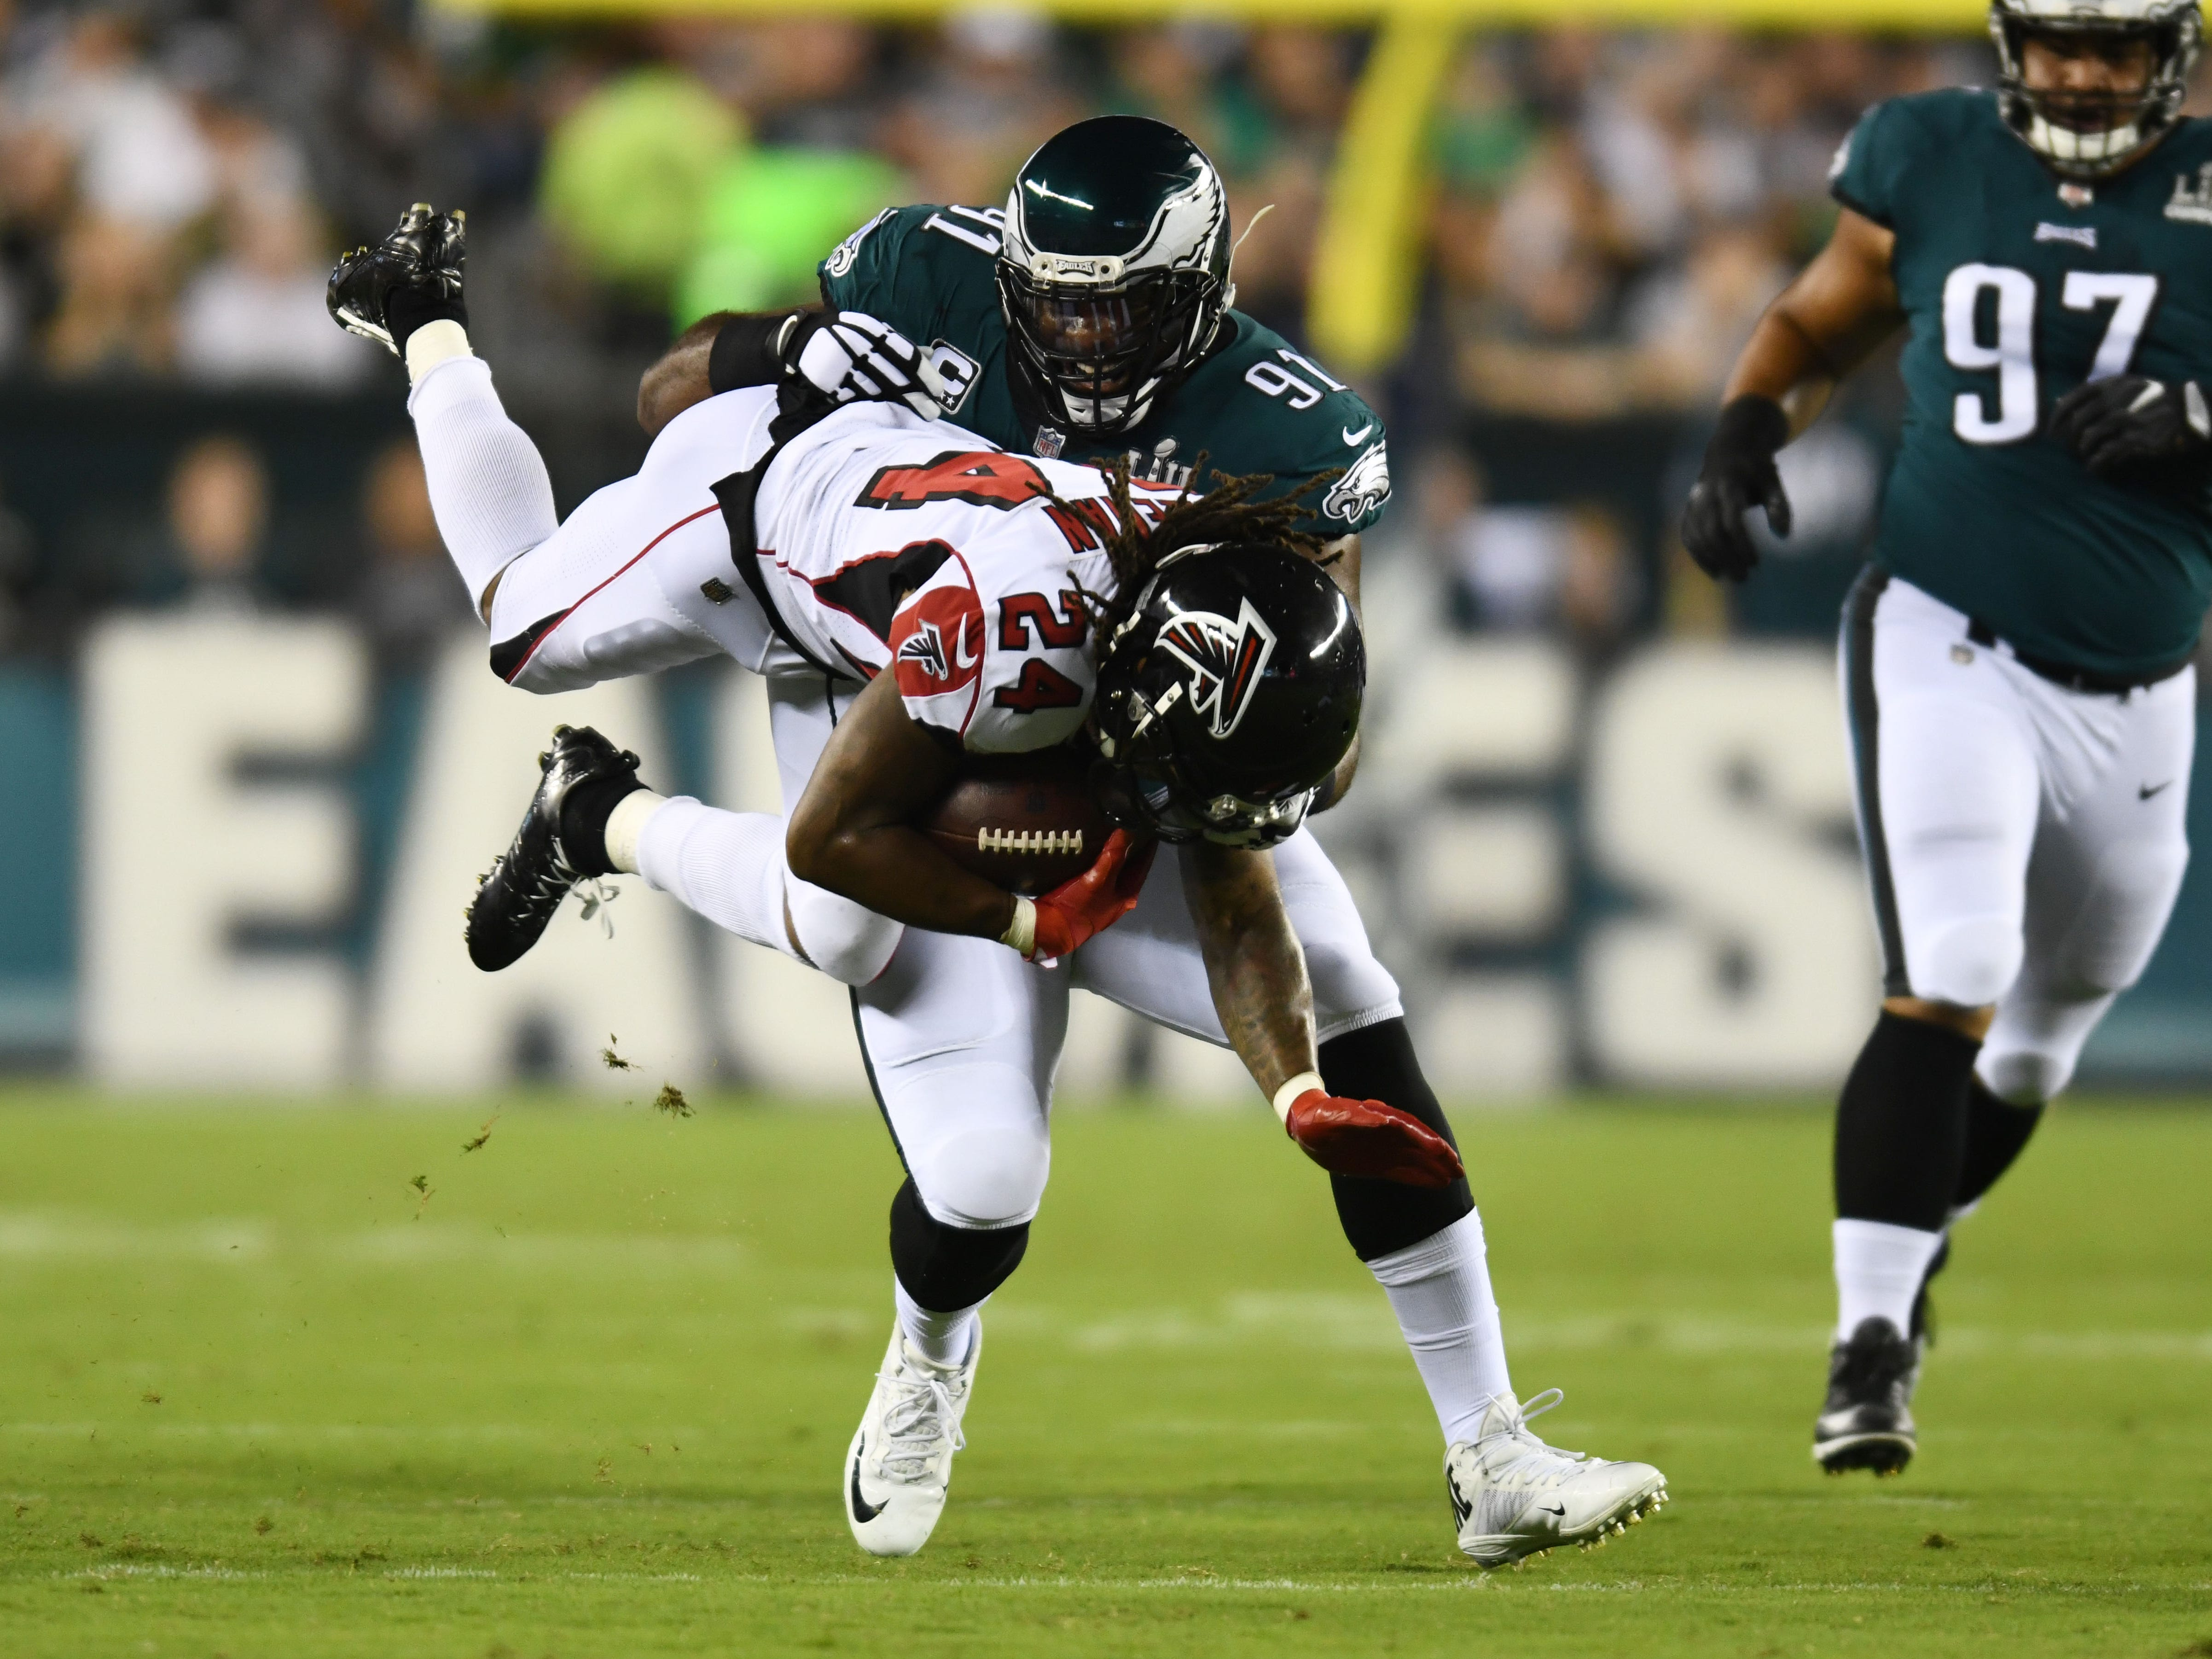 Philadelphia Eagles defensive end Fletcher Cox (91) tackles Atlanta Falcons running back Devonta Freeman (24) in the first quarter at Lincoln Financial Field.